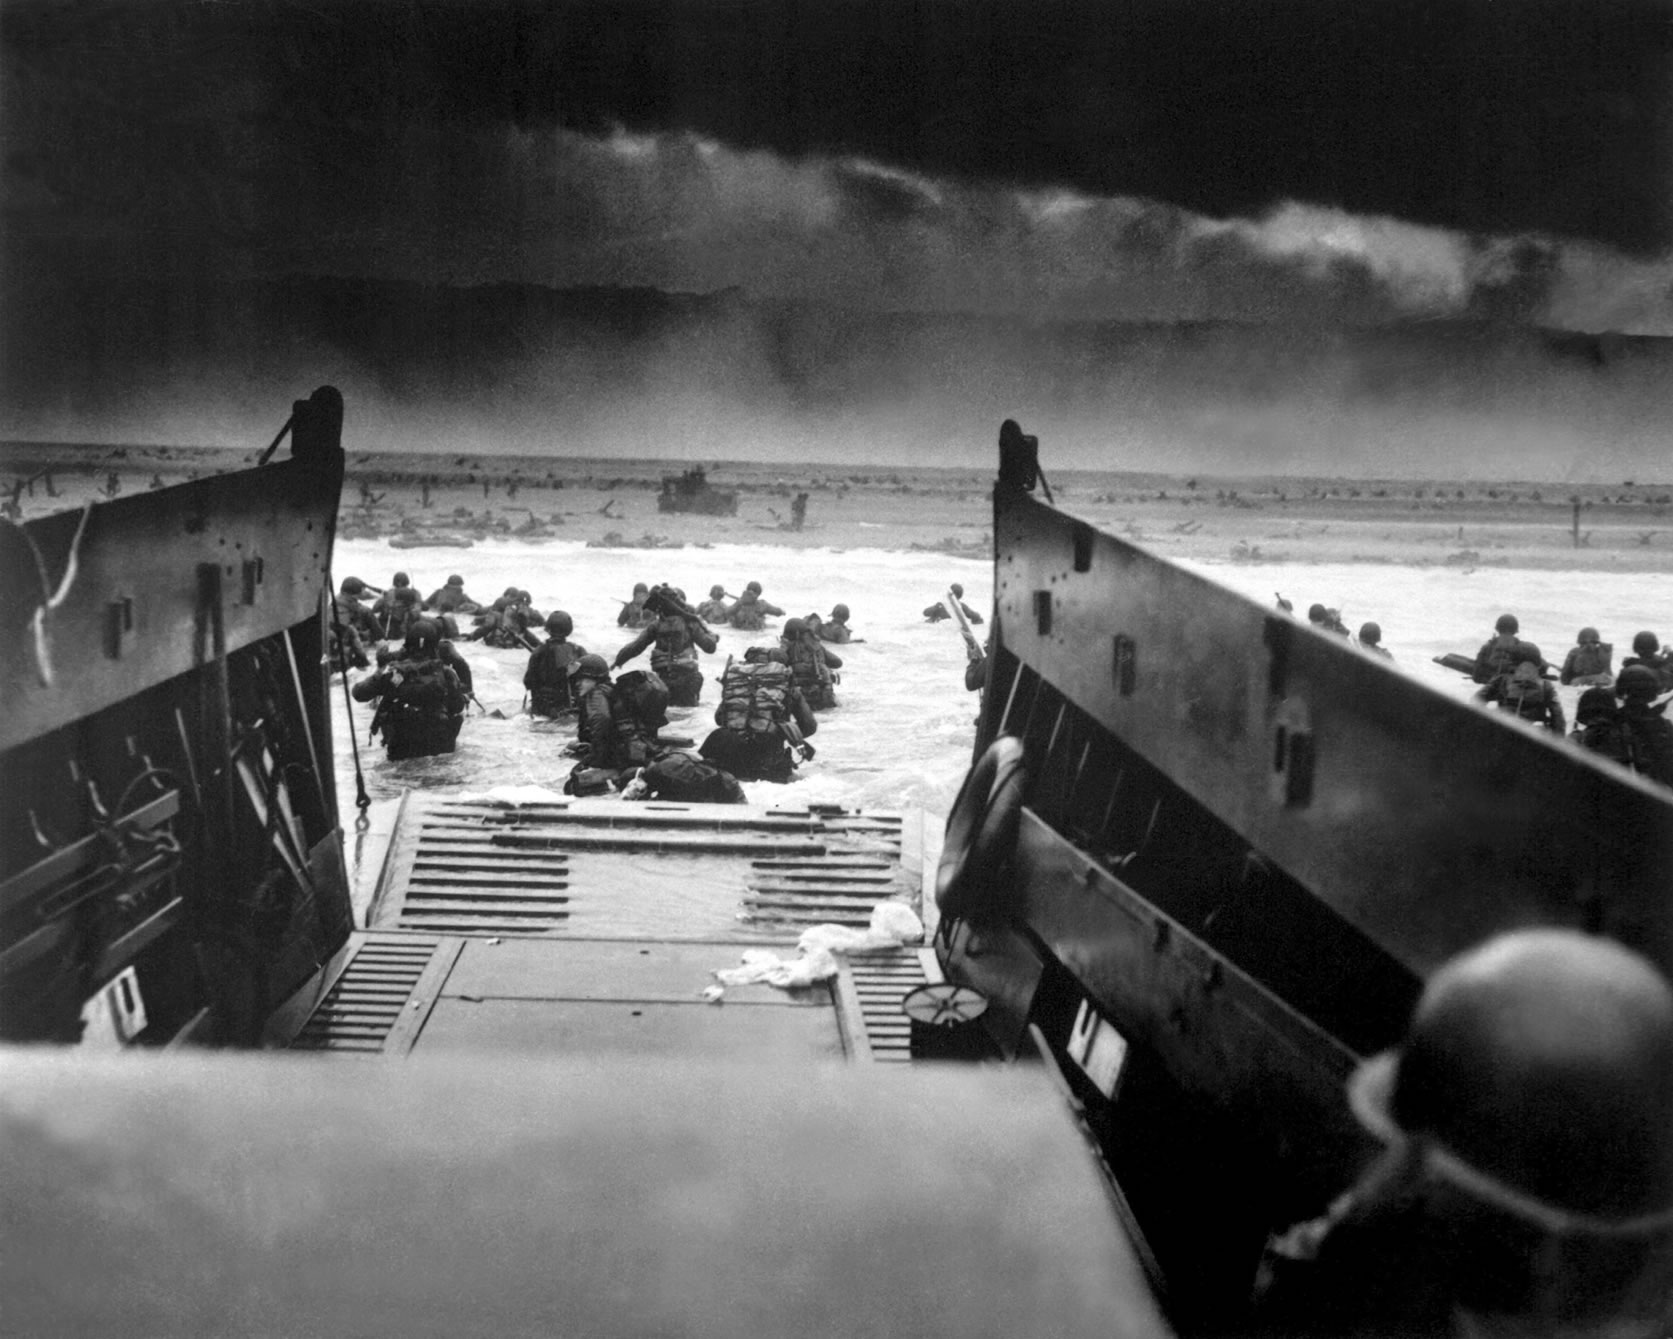 US Soldiers landing on the coast of France June 6, 1944.